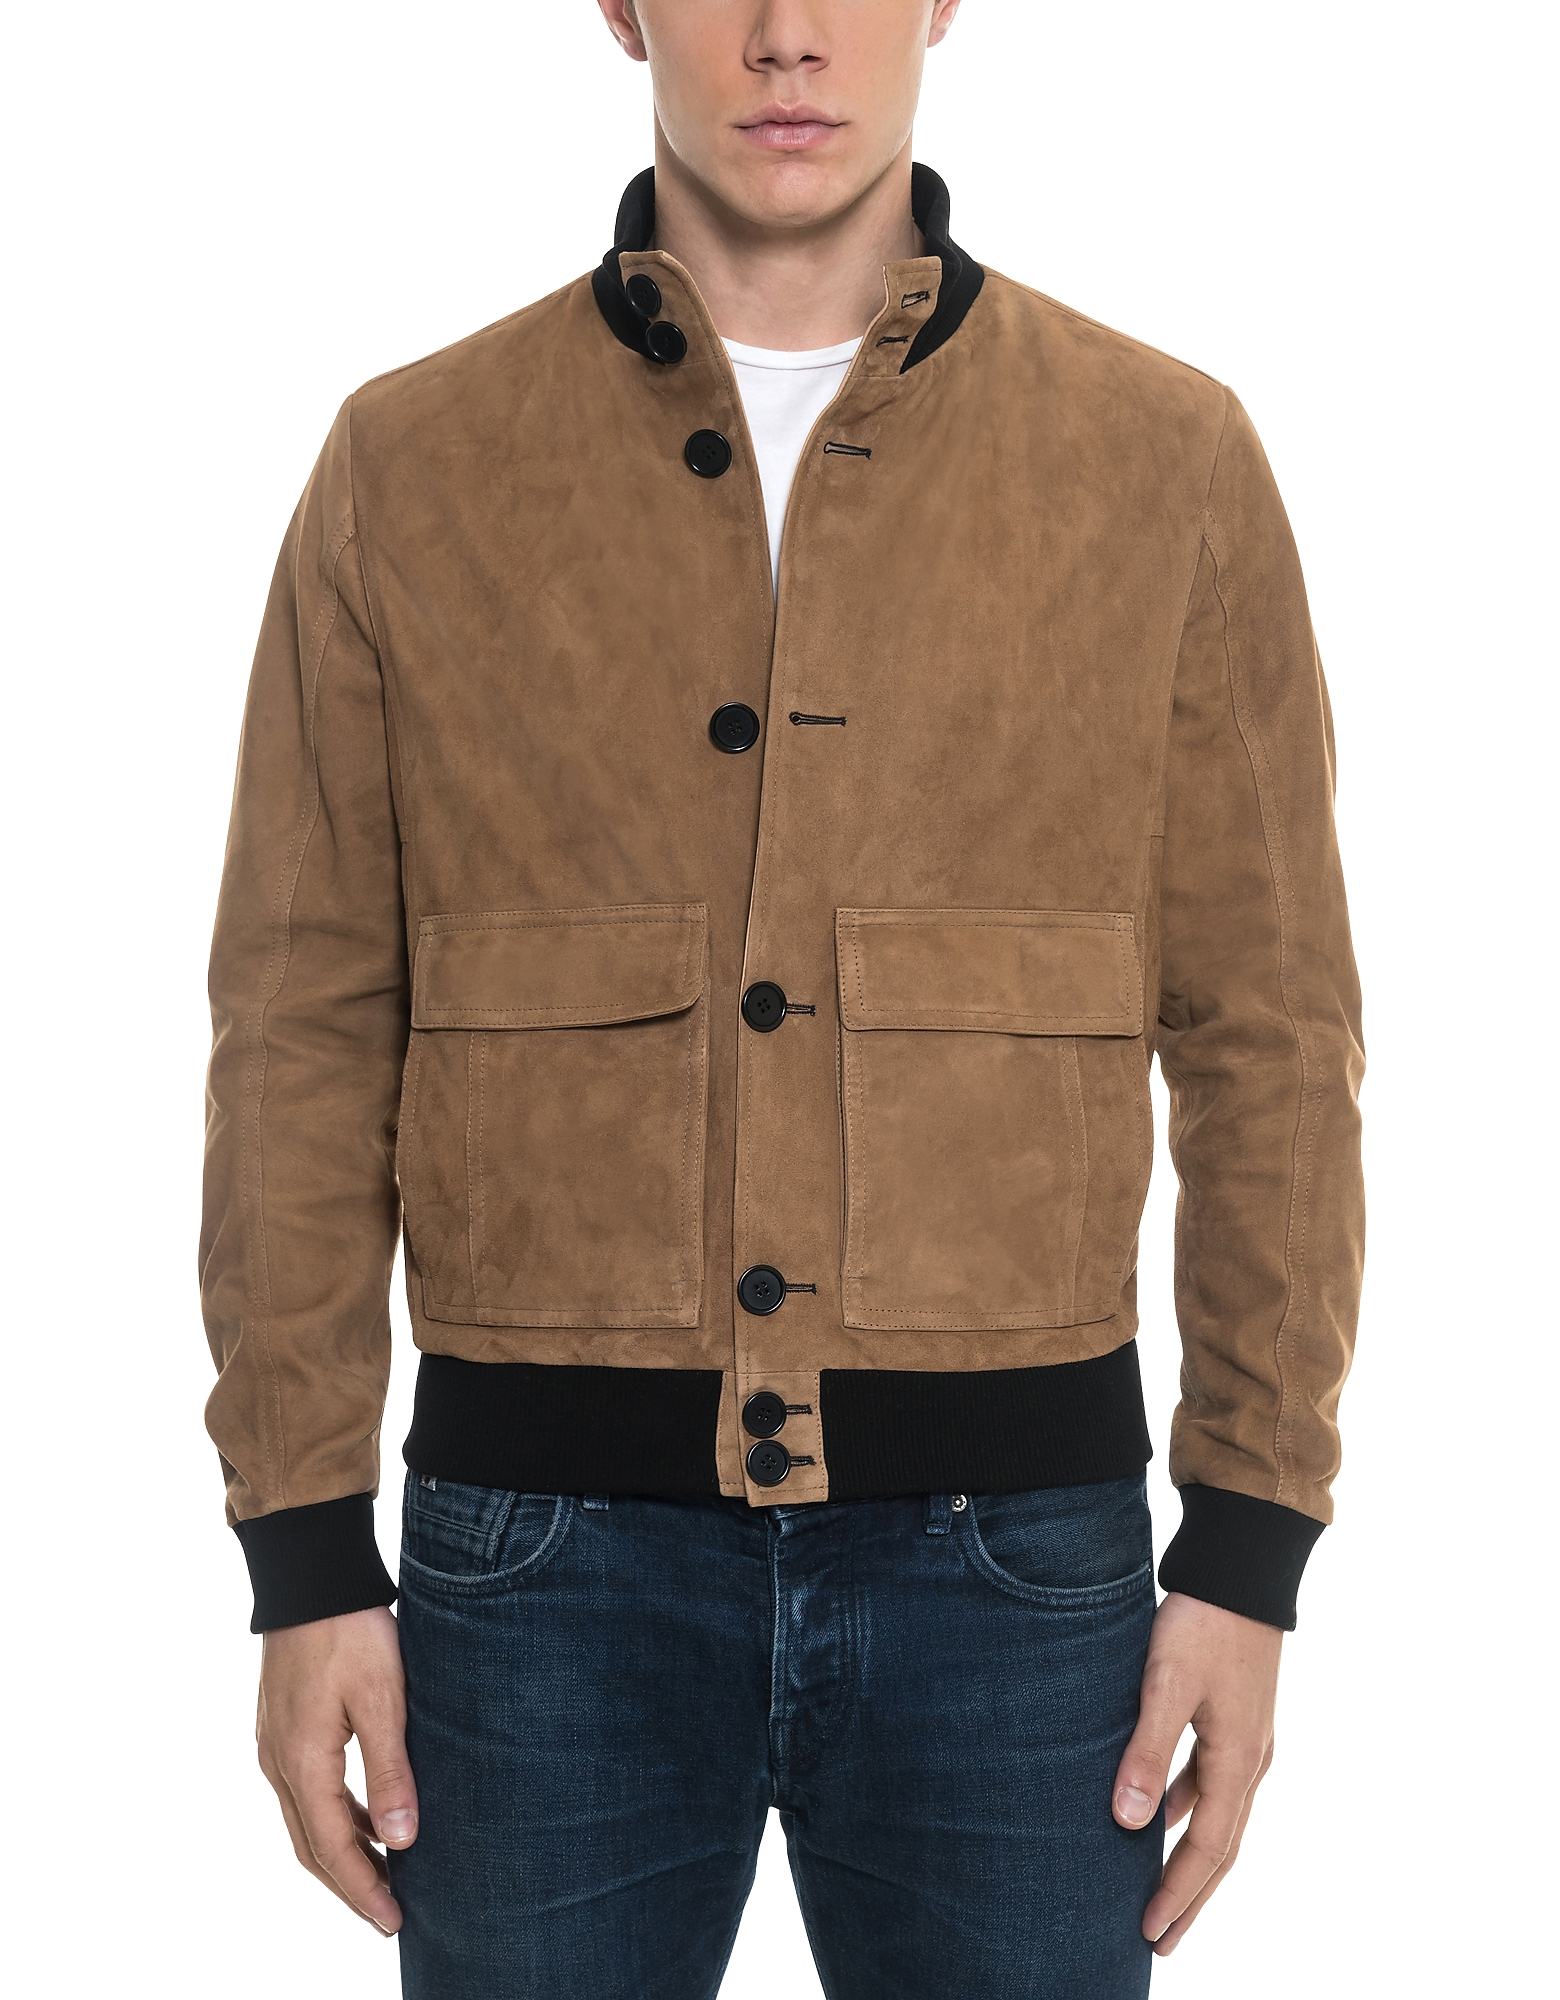 Forzieri Leather Jackets, Brown Suede Men's Bomber Jacket